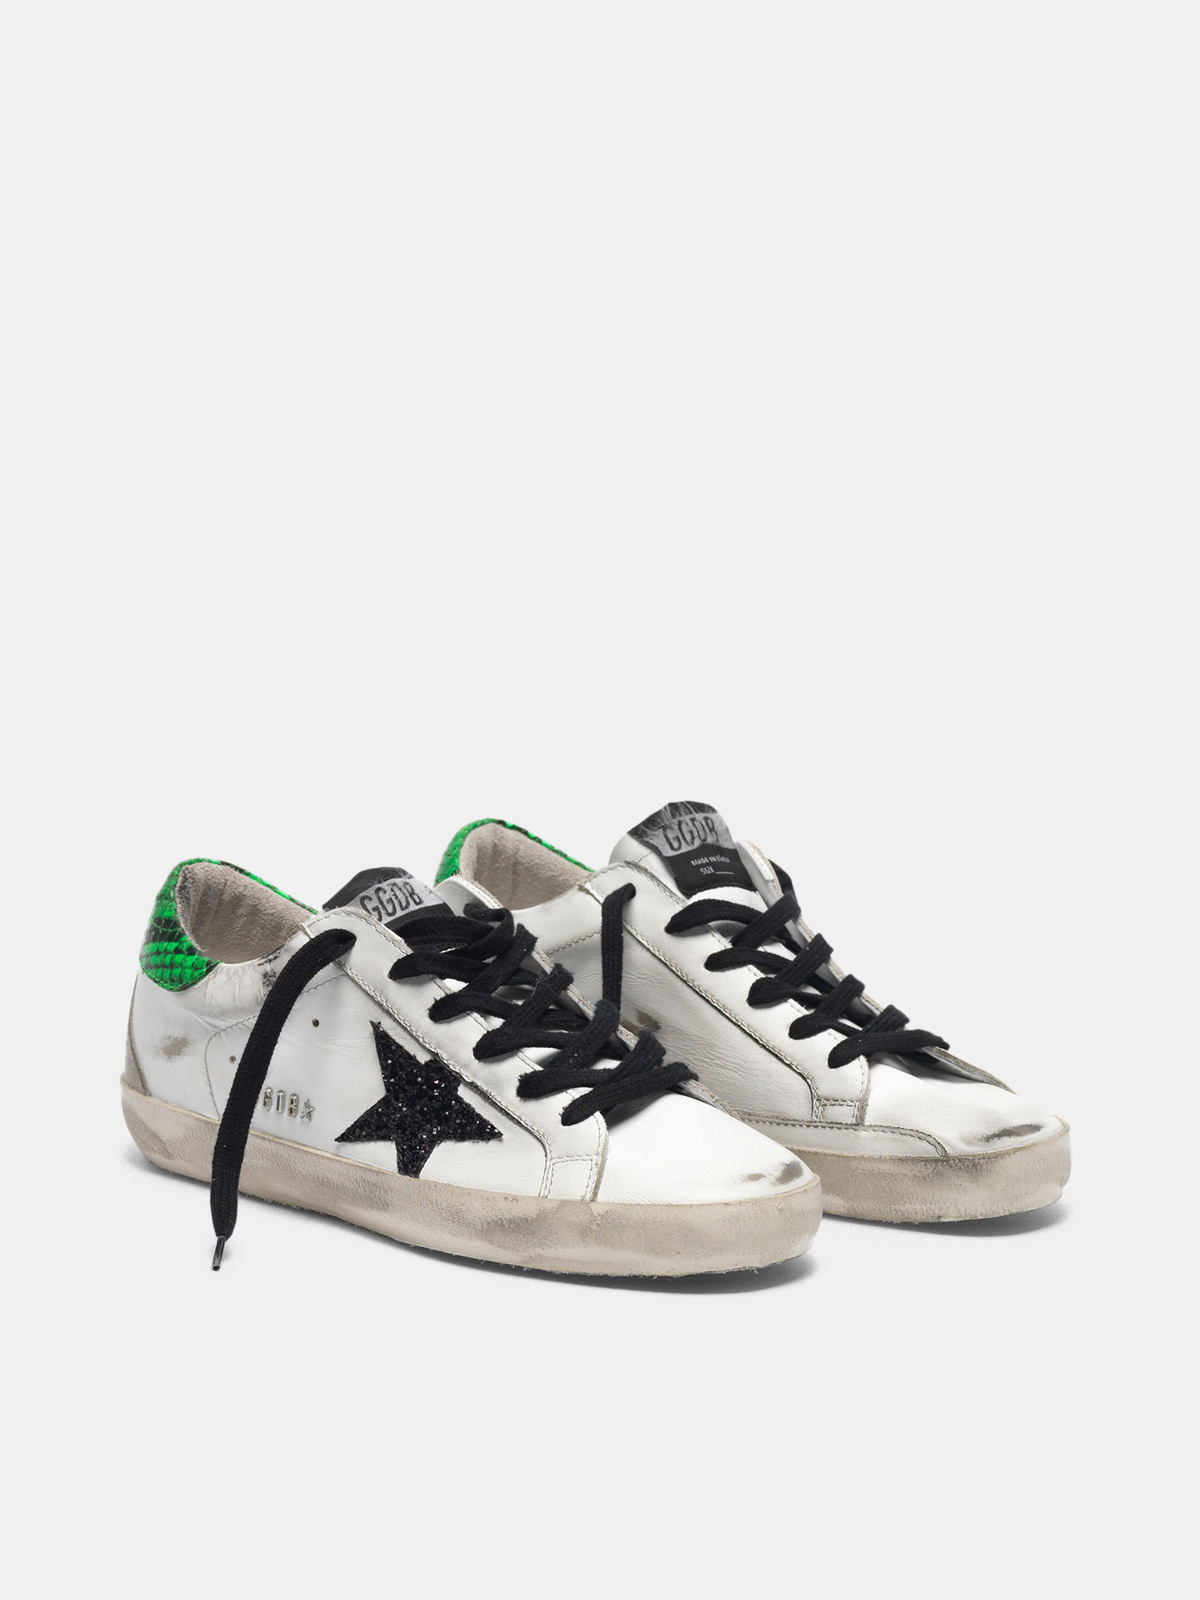 Golden Goose - Super-Star sneakers with glittery black star and snakeskin-print heel tab in